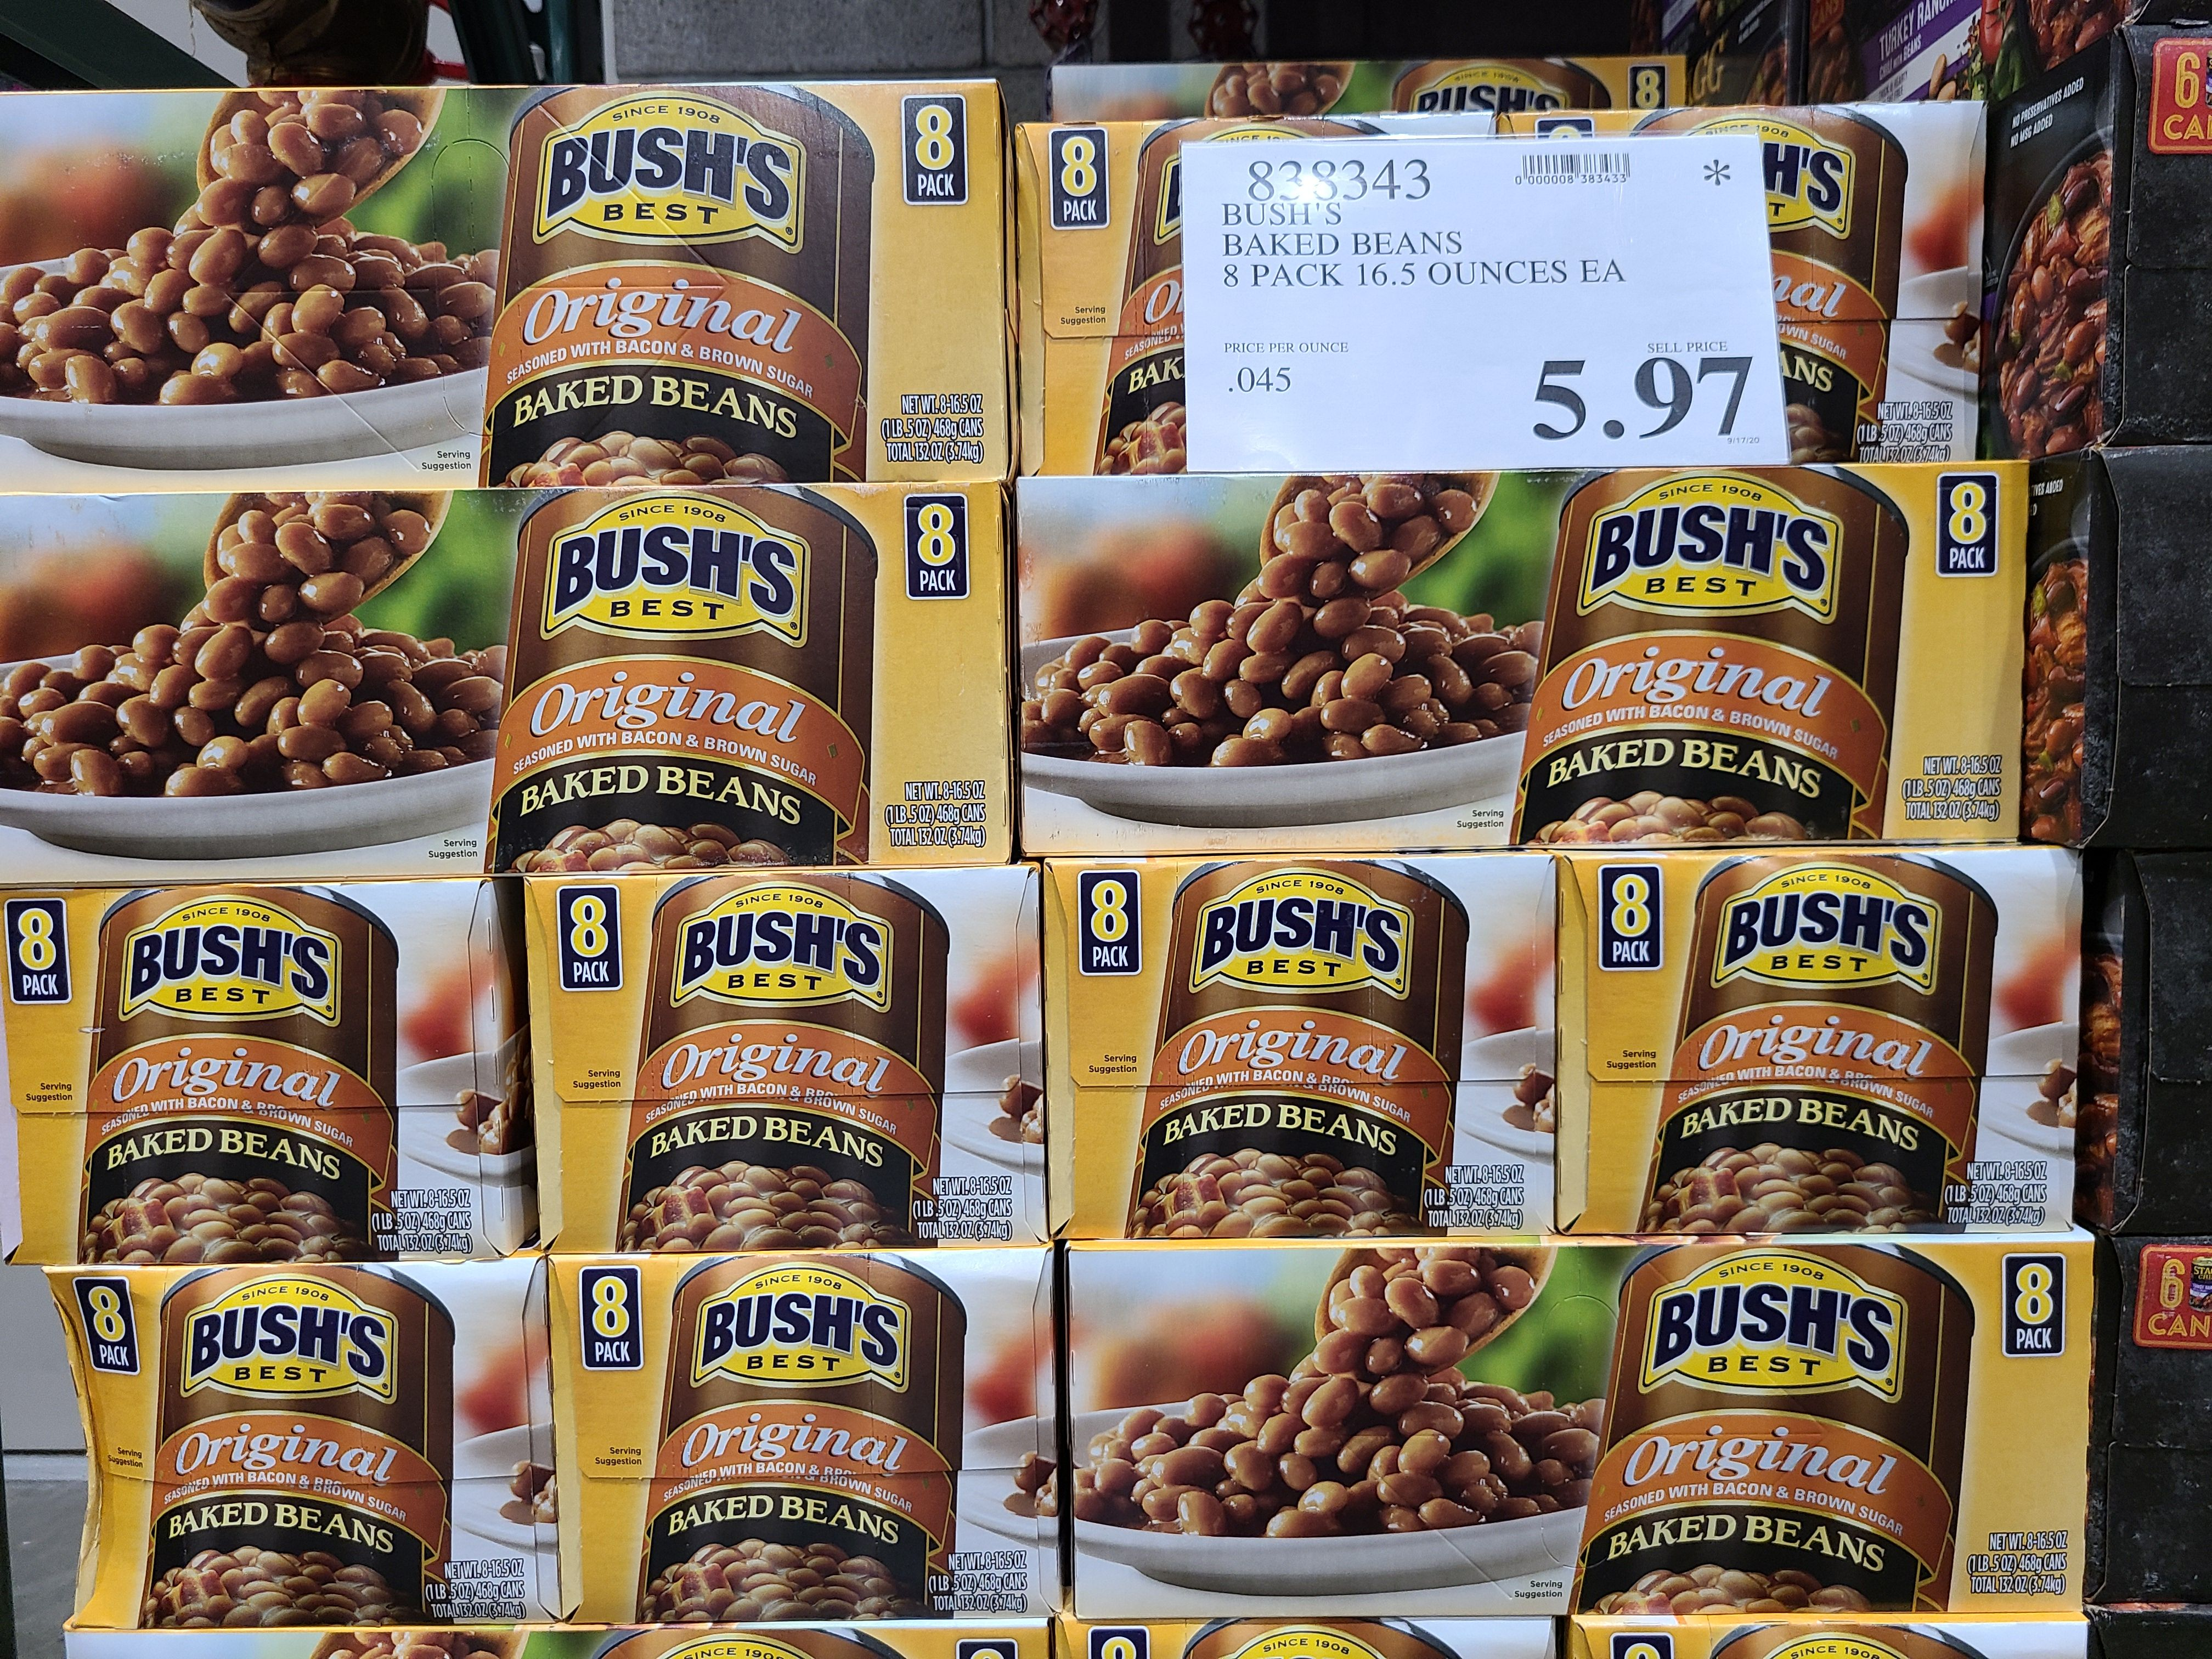 Bush S Baked Beans 8 Pack 5 97 Costco Clearance In 2020 Baked Beans Beans Baking